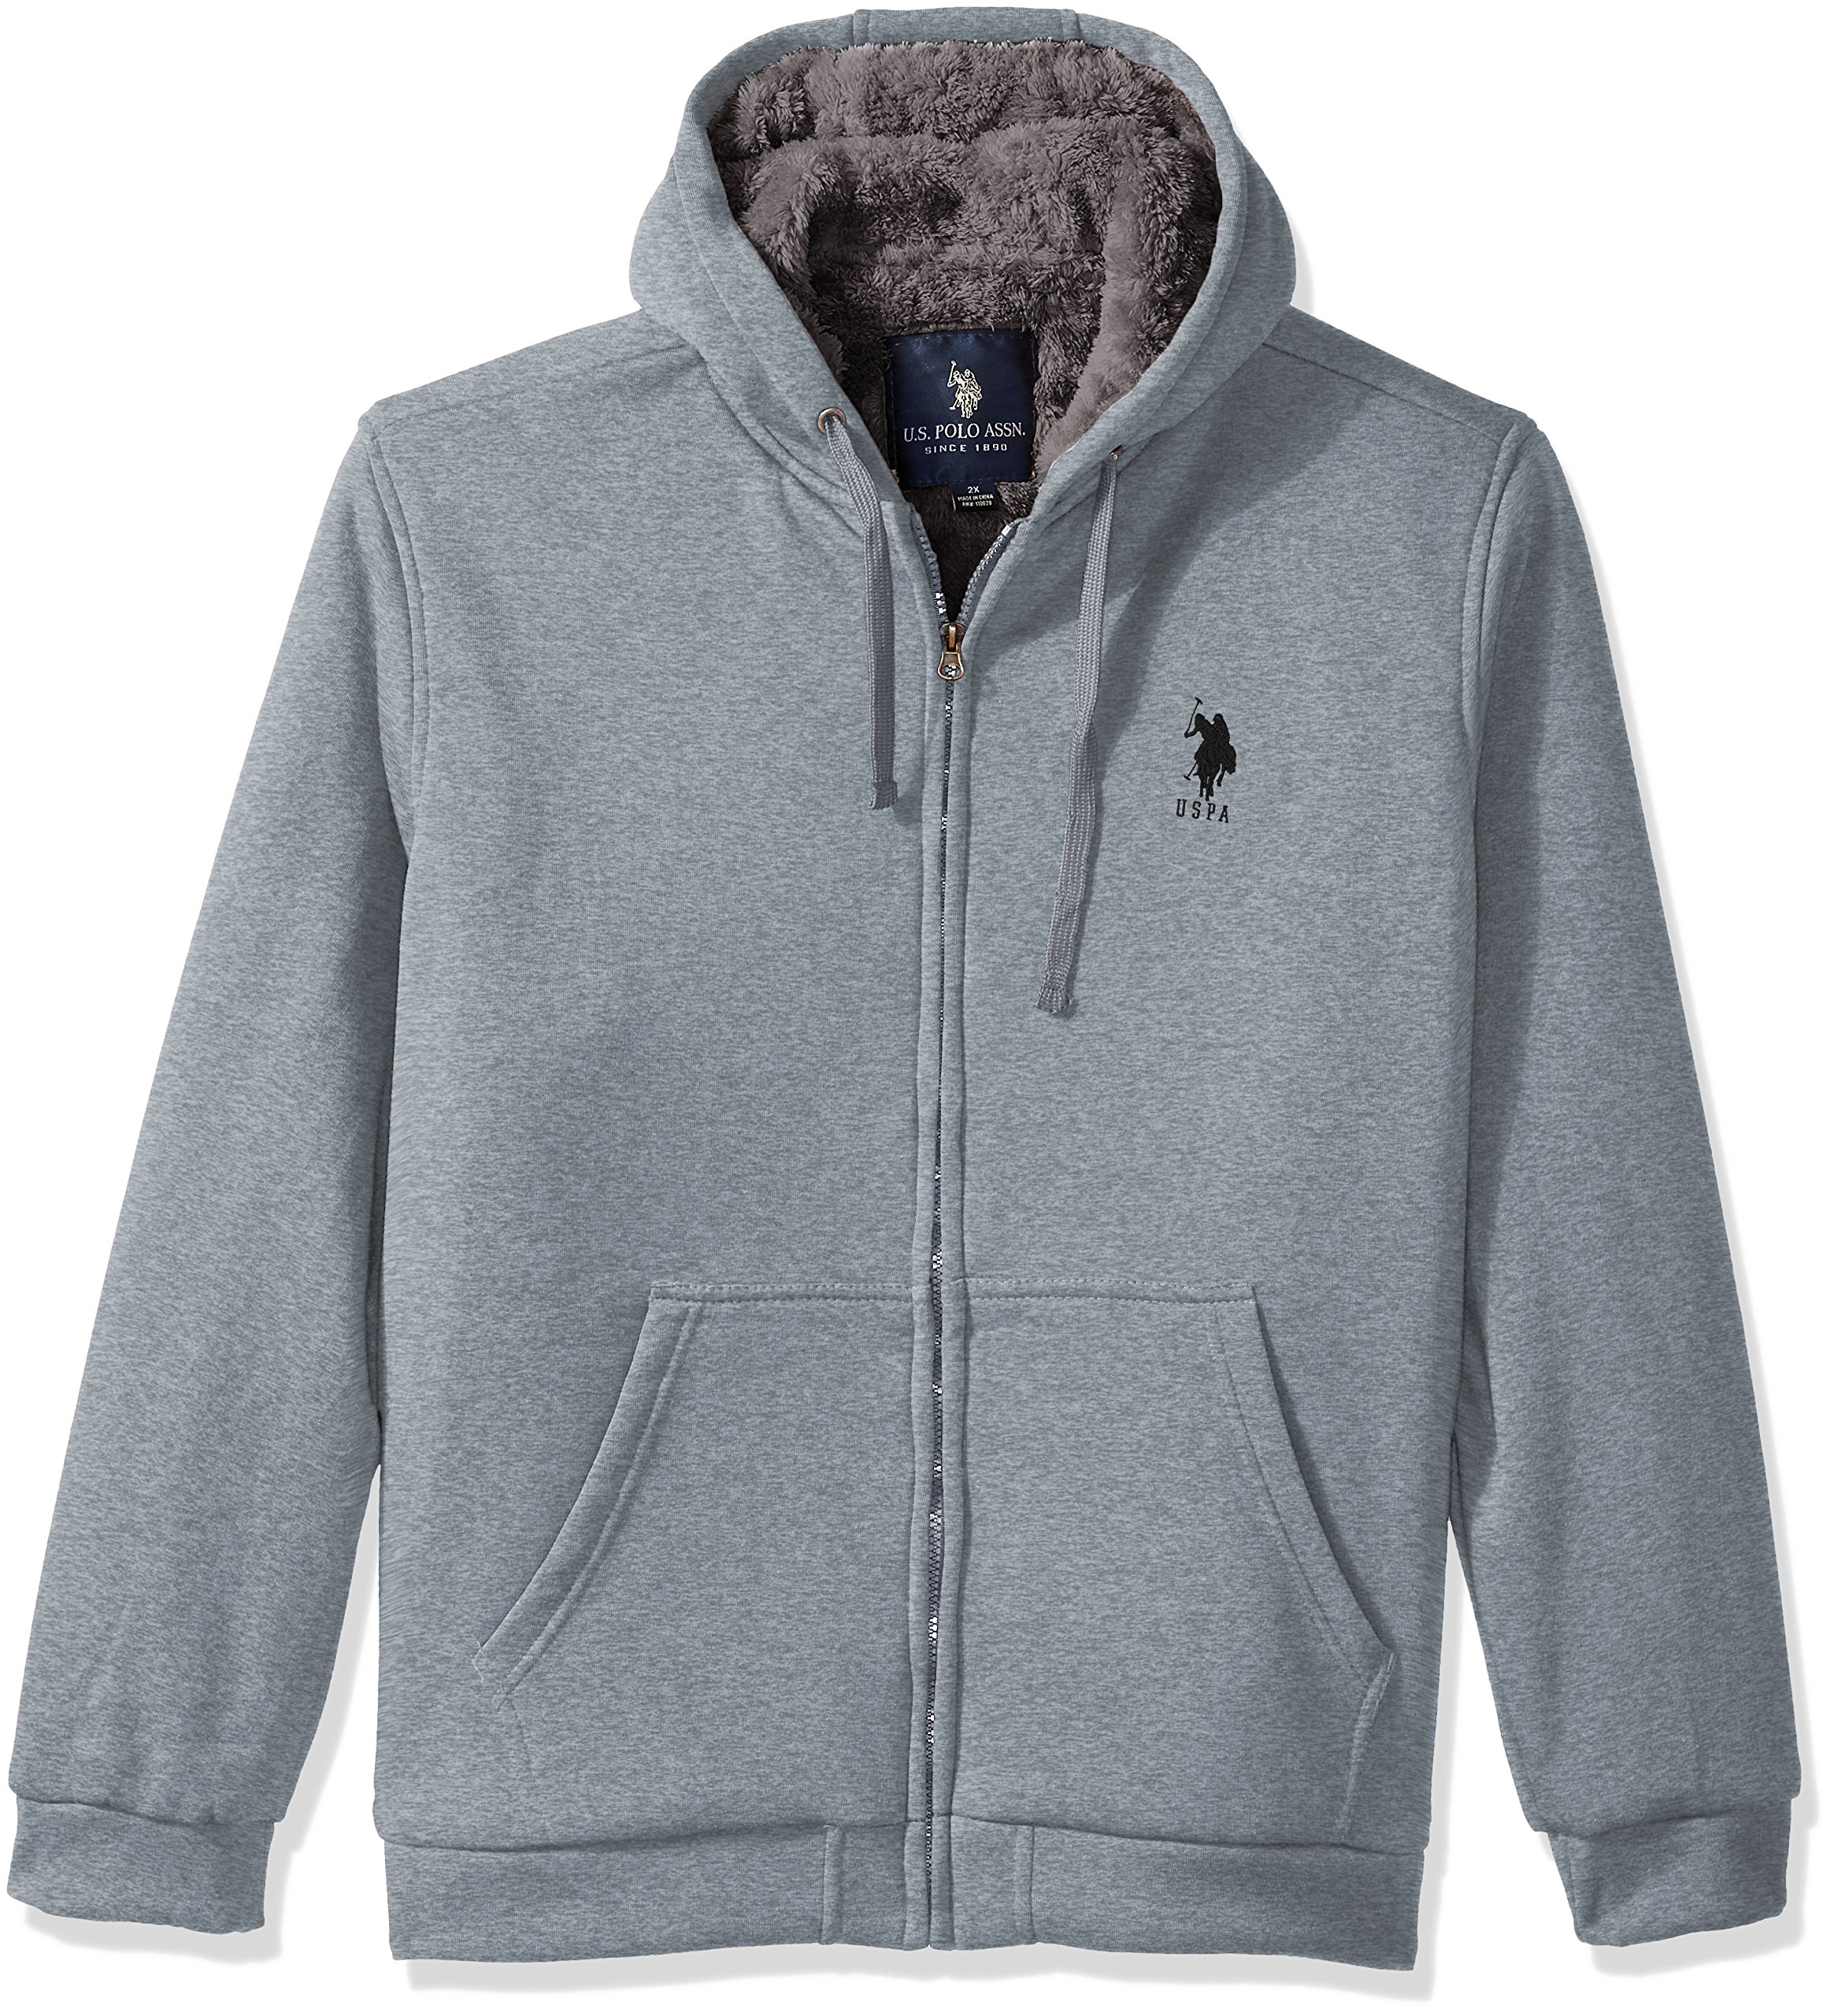 U.S. Polo Assn.. Mens Standard Sherpa Lined Fleece Hoodie, Heather Grey 5516, 4X